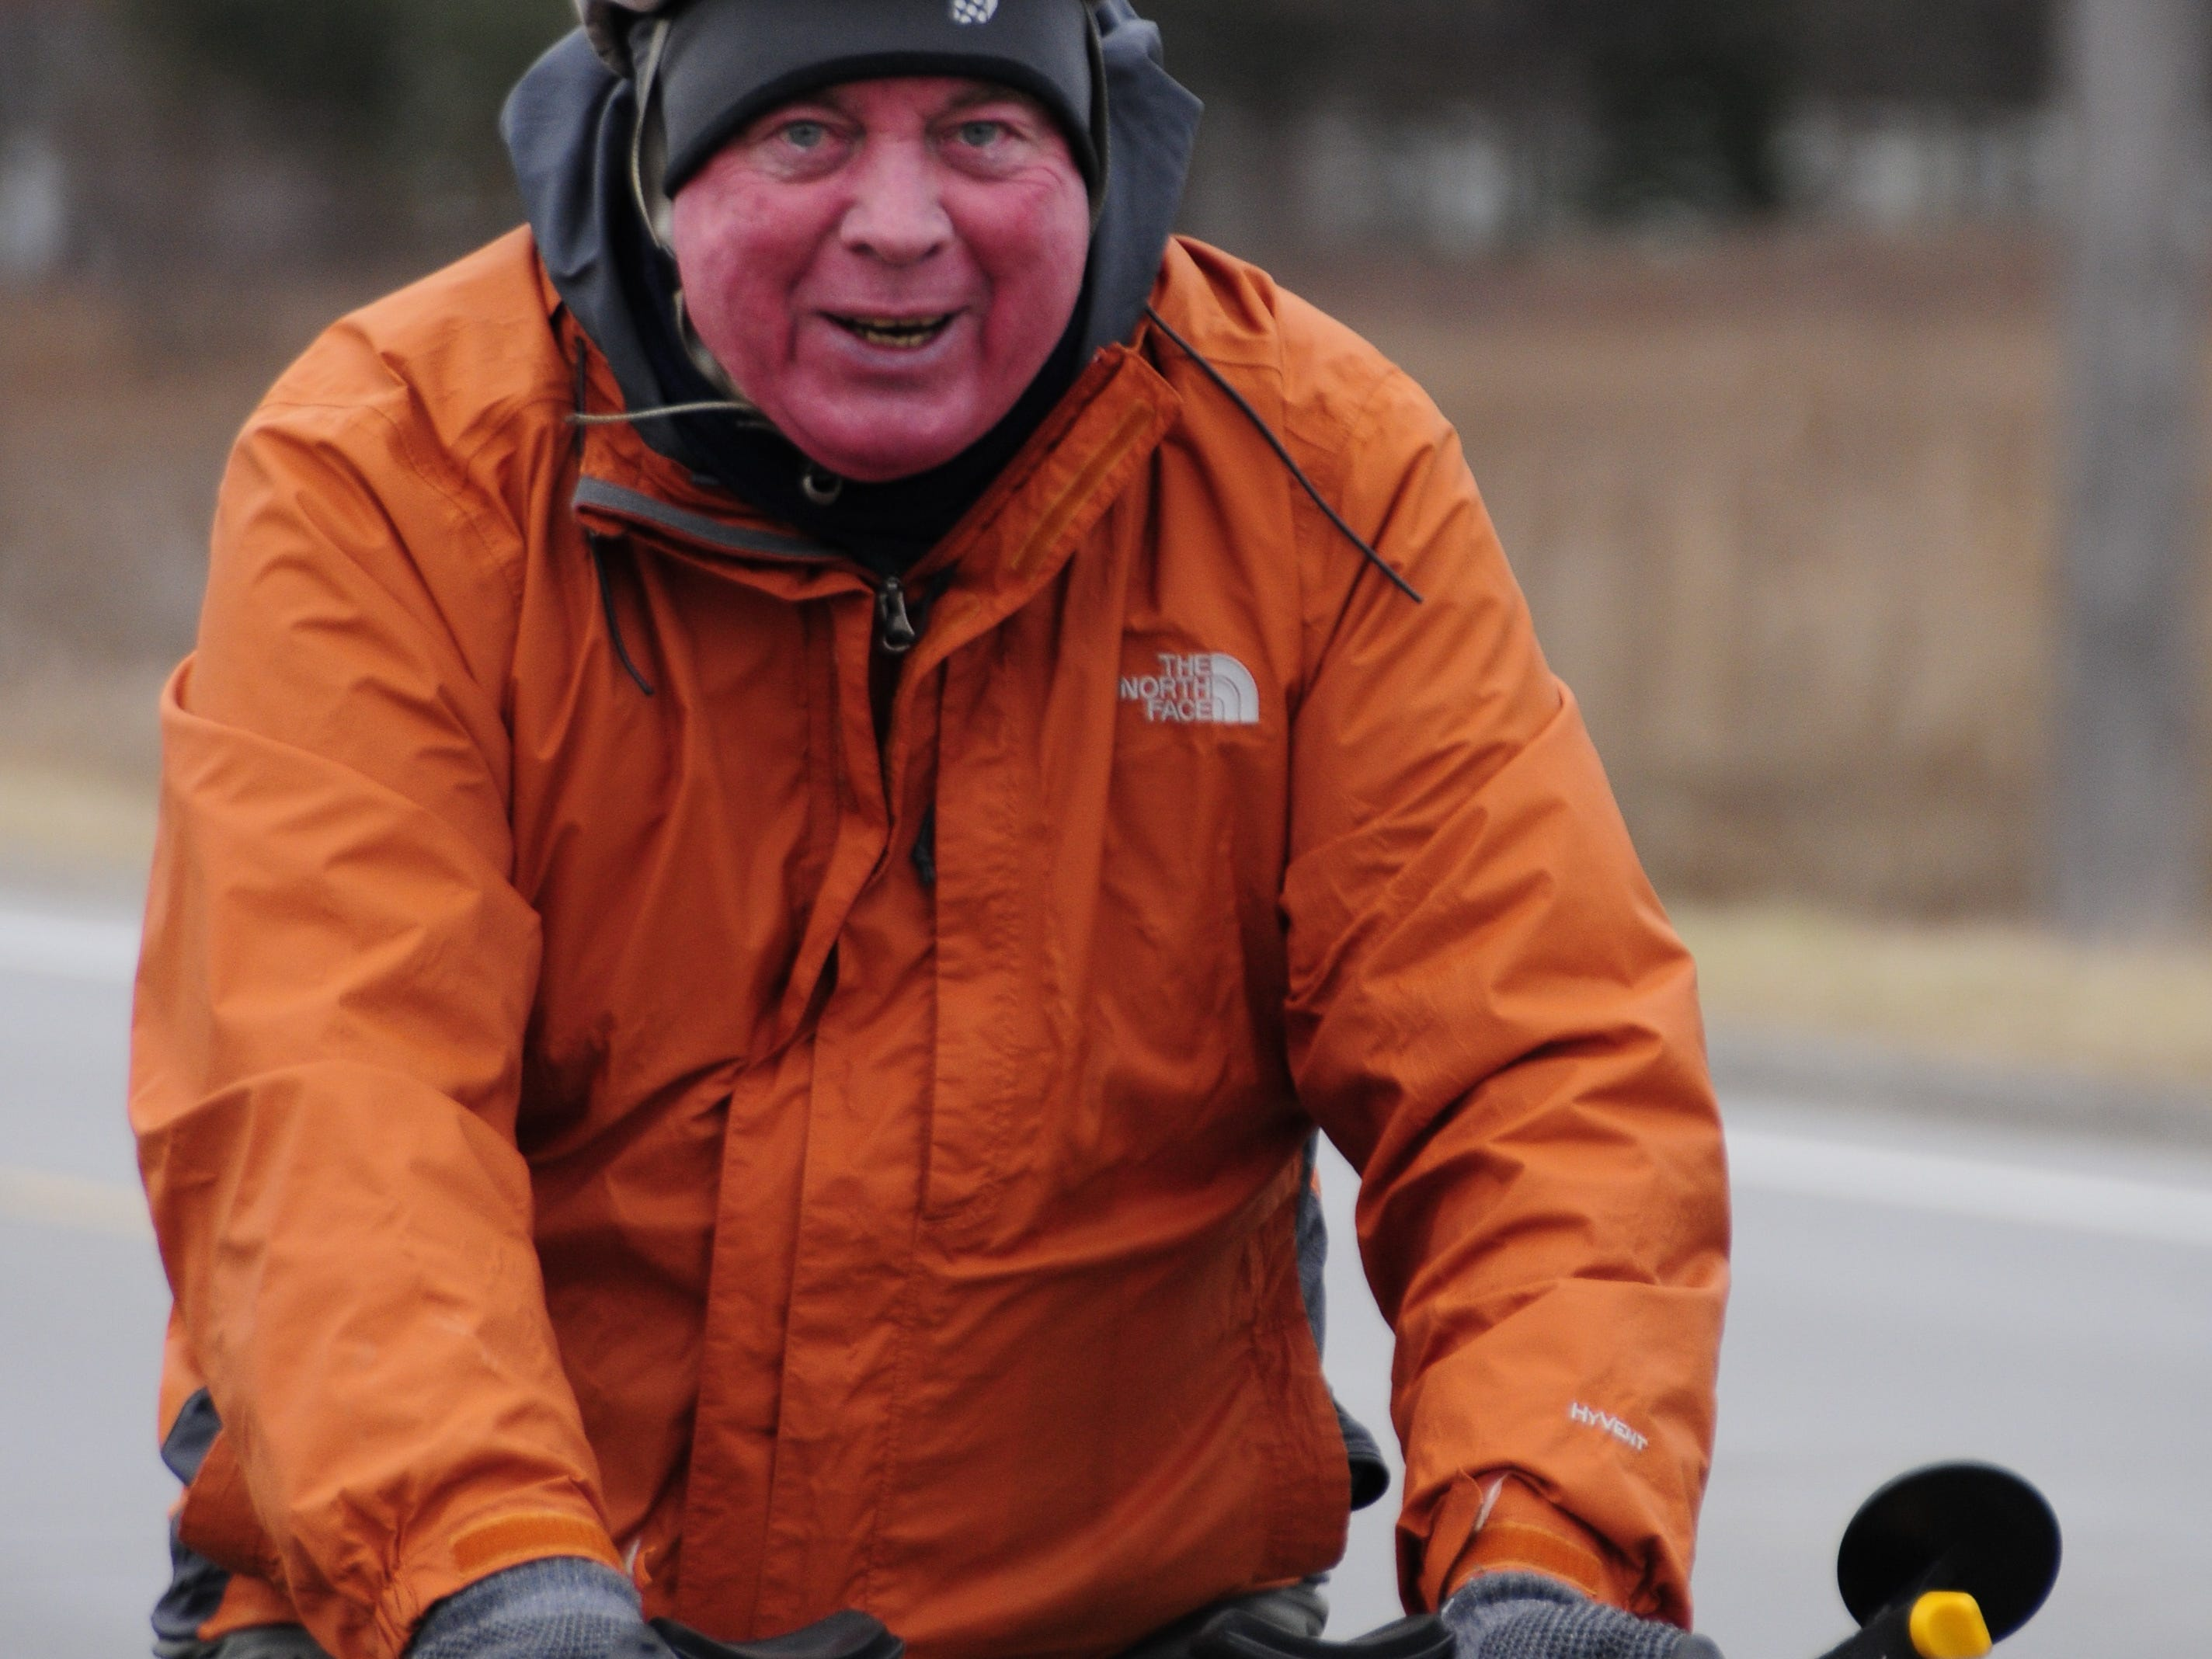 Mike Ziegler climbs a long hill at the start of the Lexington to Croswell New Year's Bike Ride.